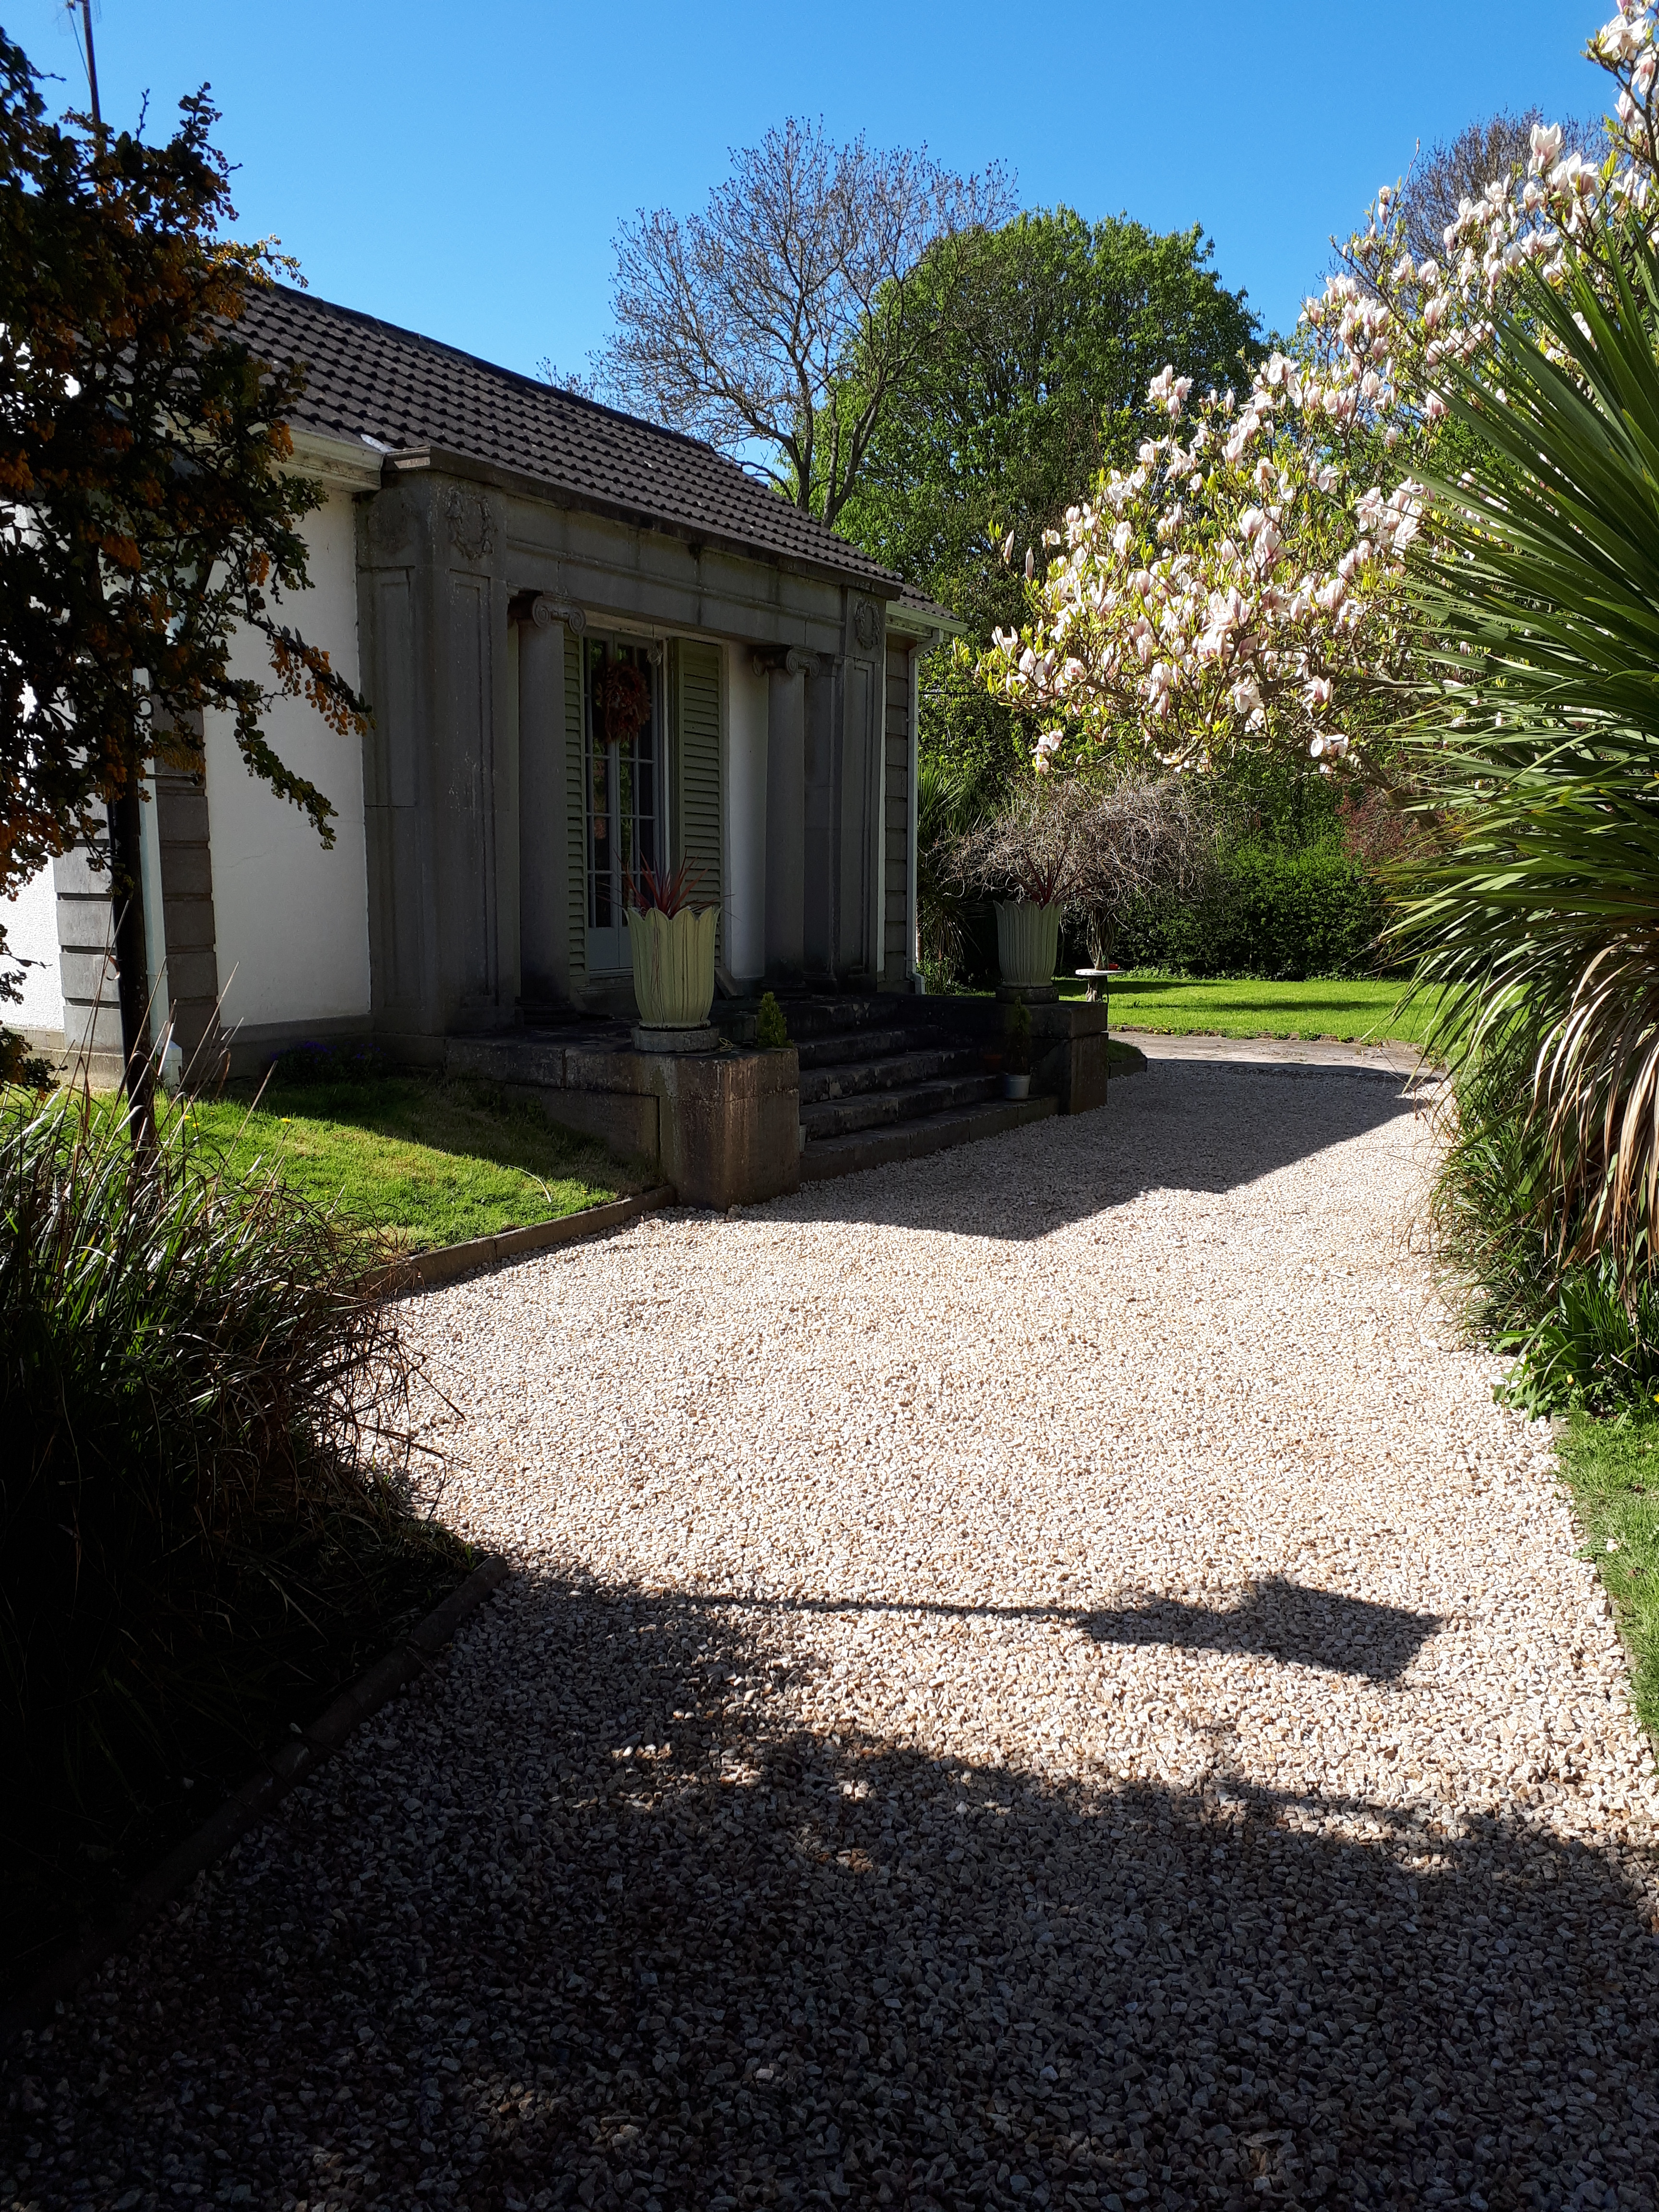 Image of a gravel driveway in a complementary garden stetting.